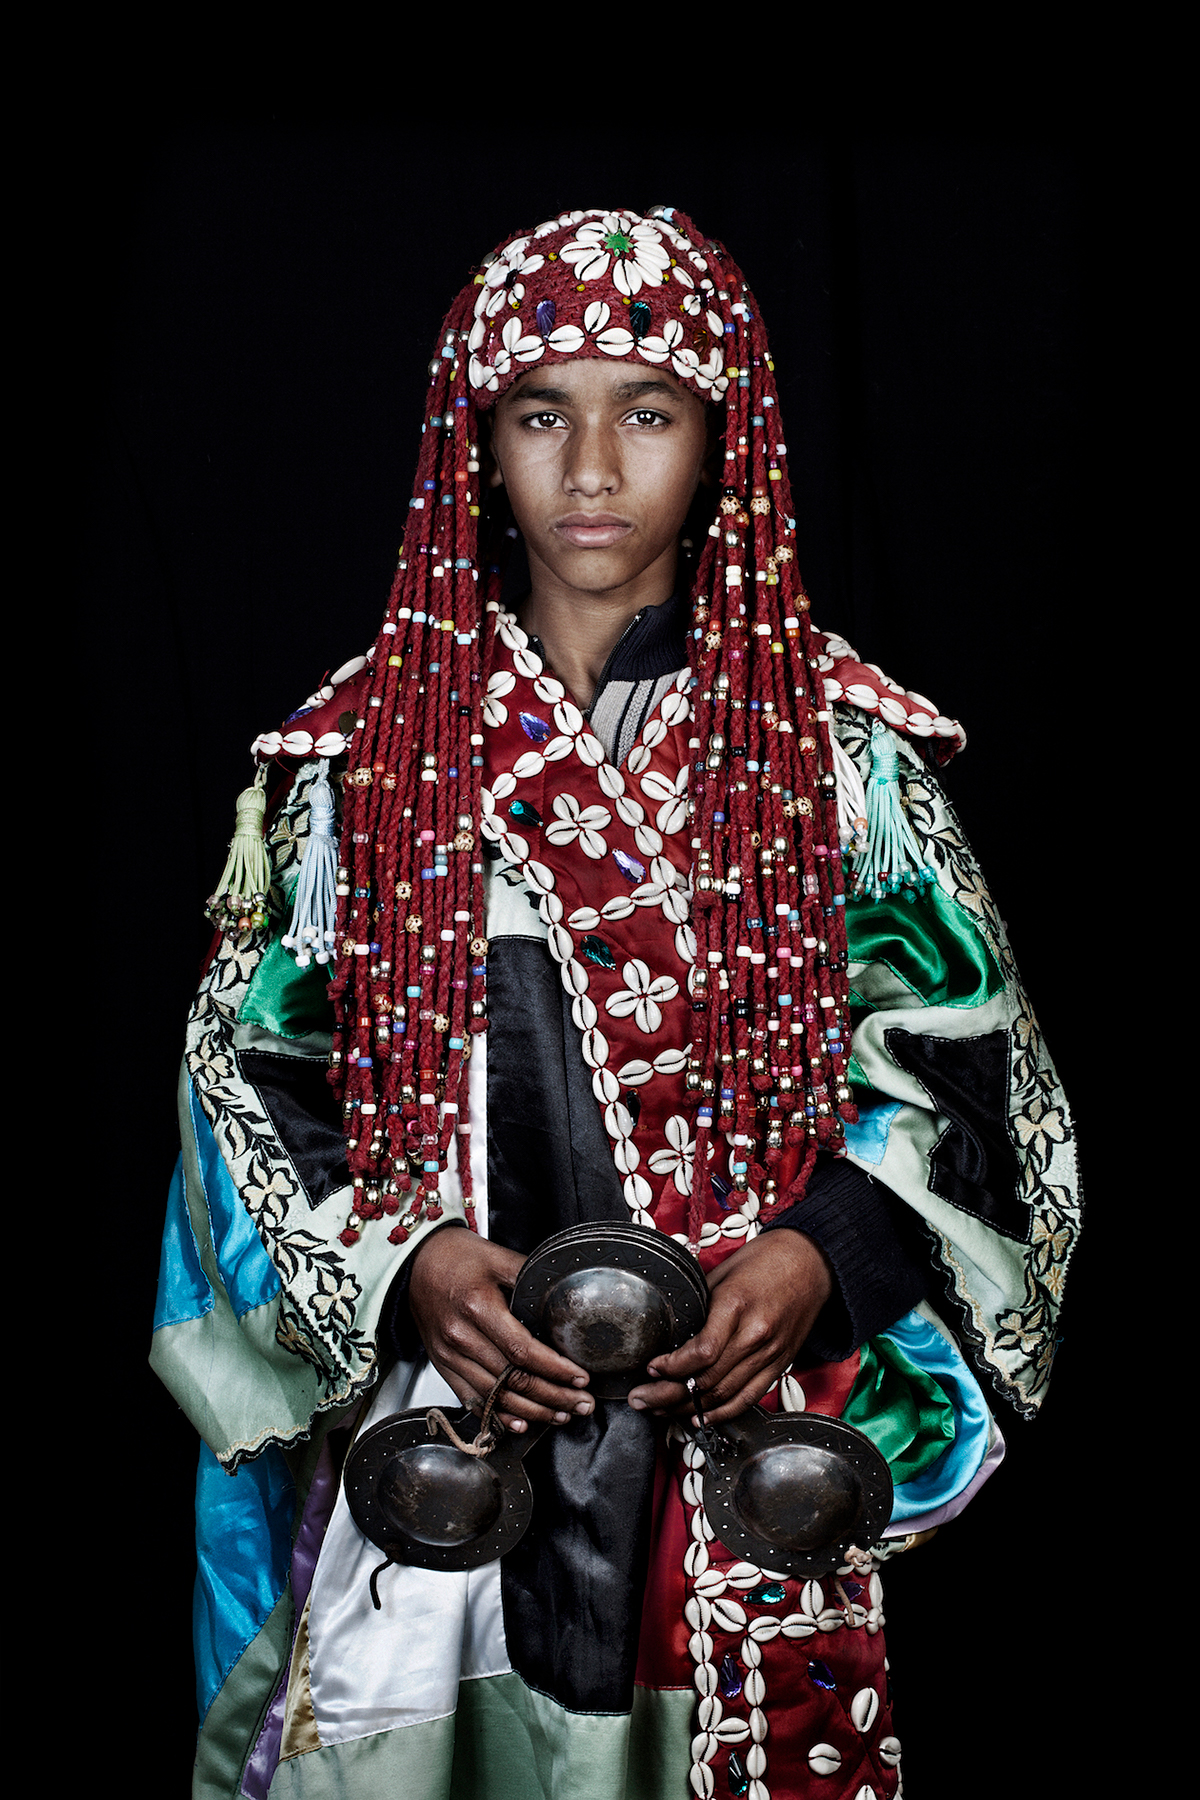 Tamesloht, 2011 from the series Les Marocains by Leila Alaoui